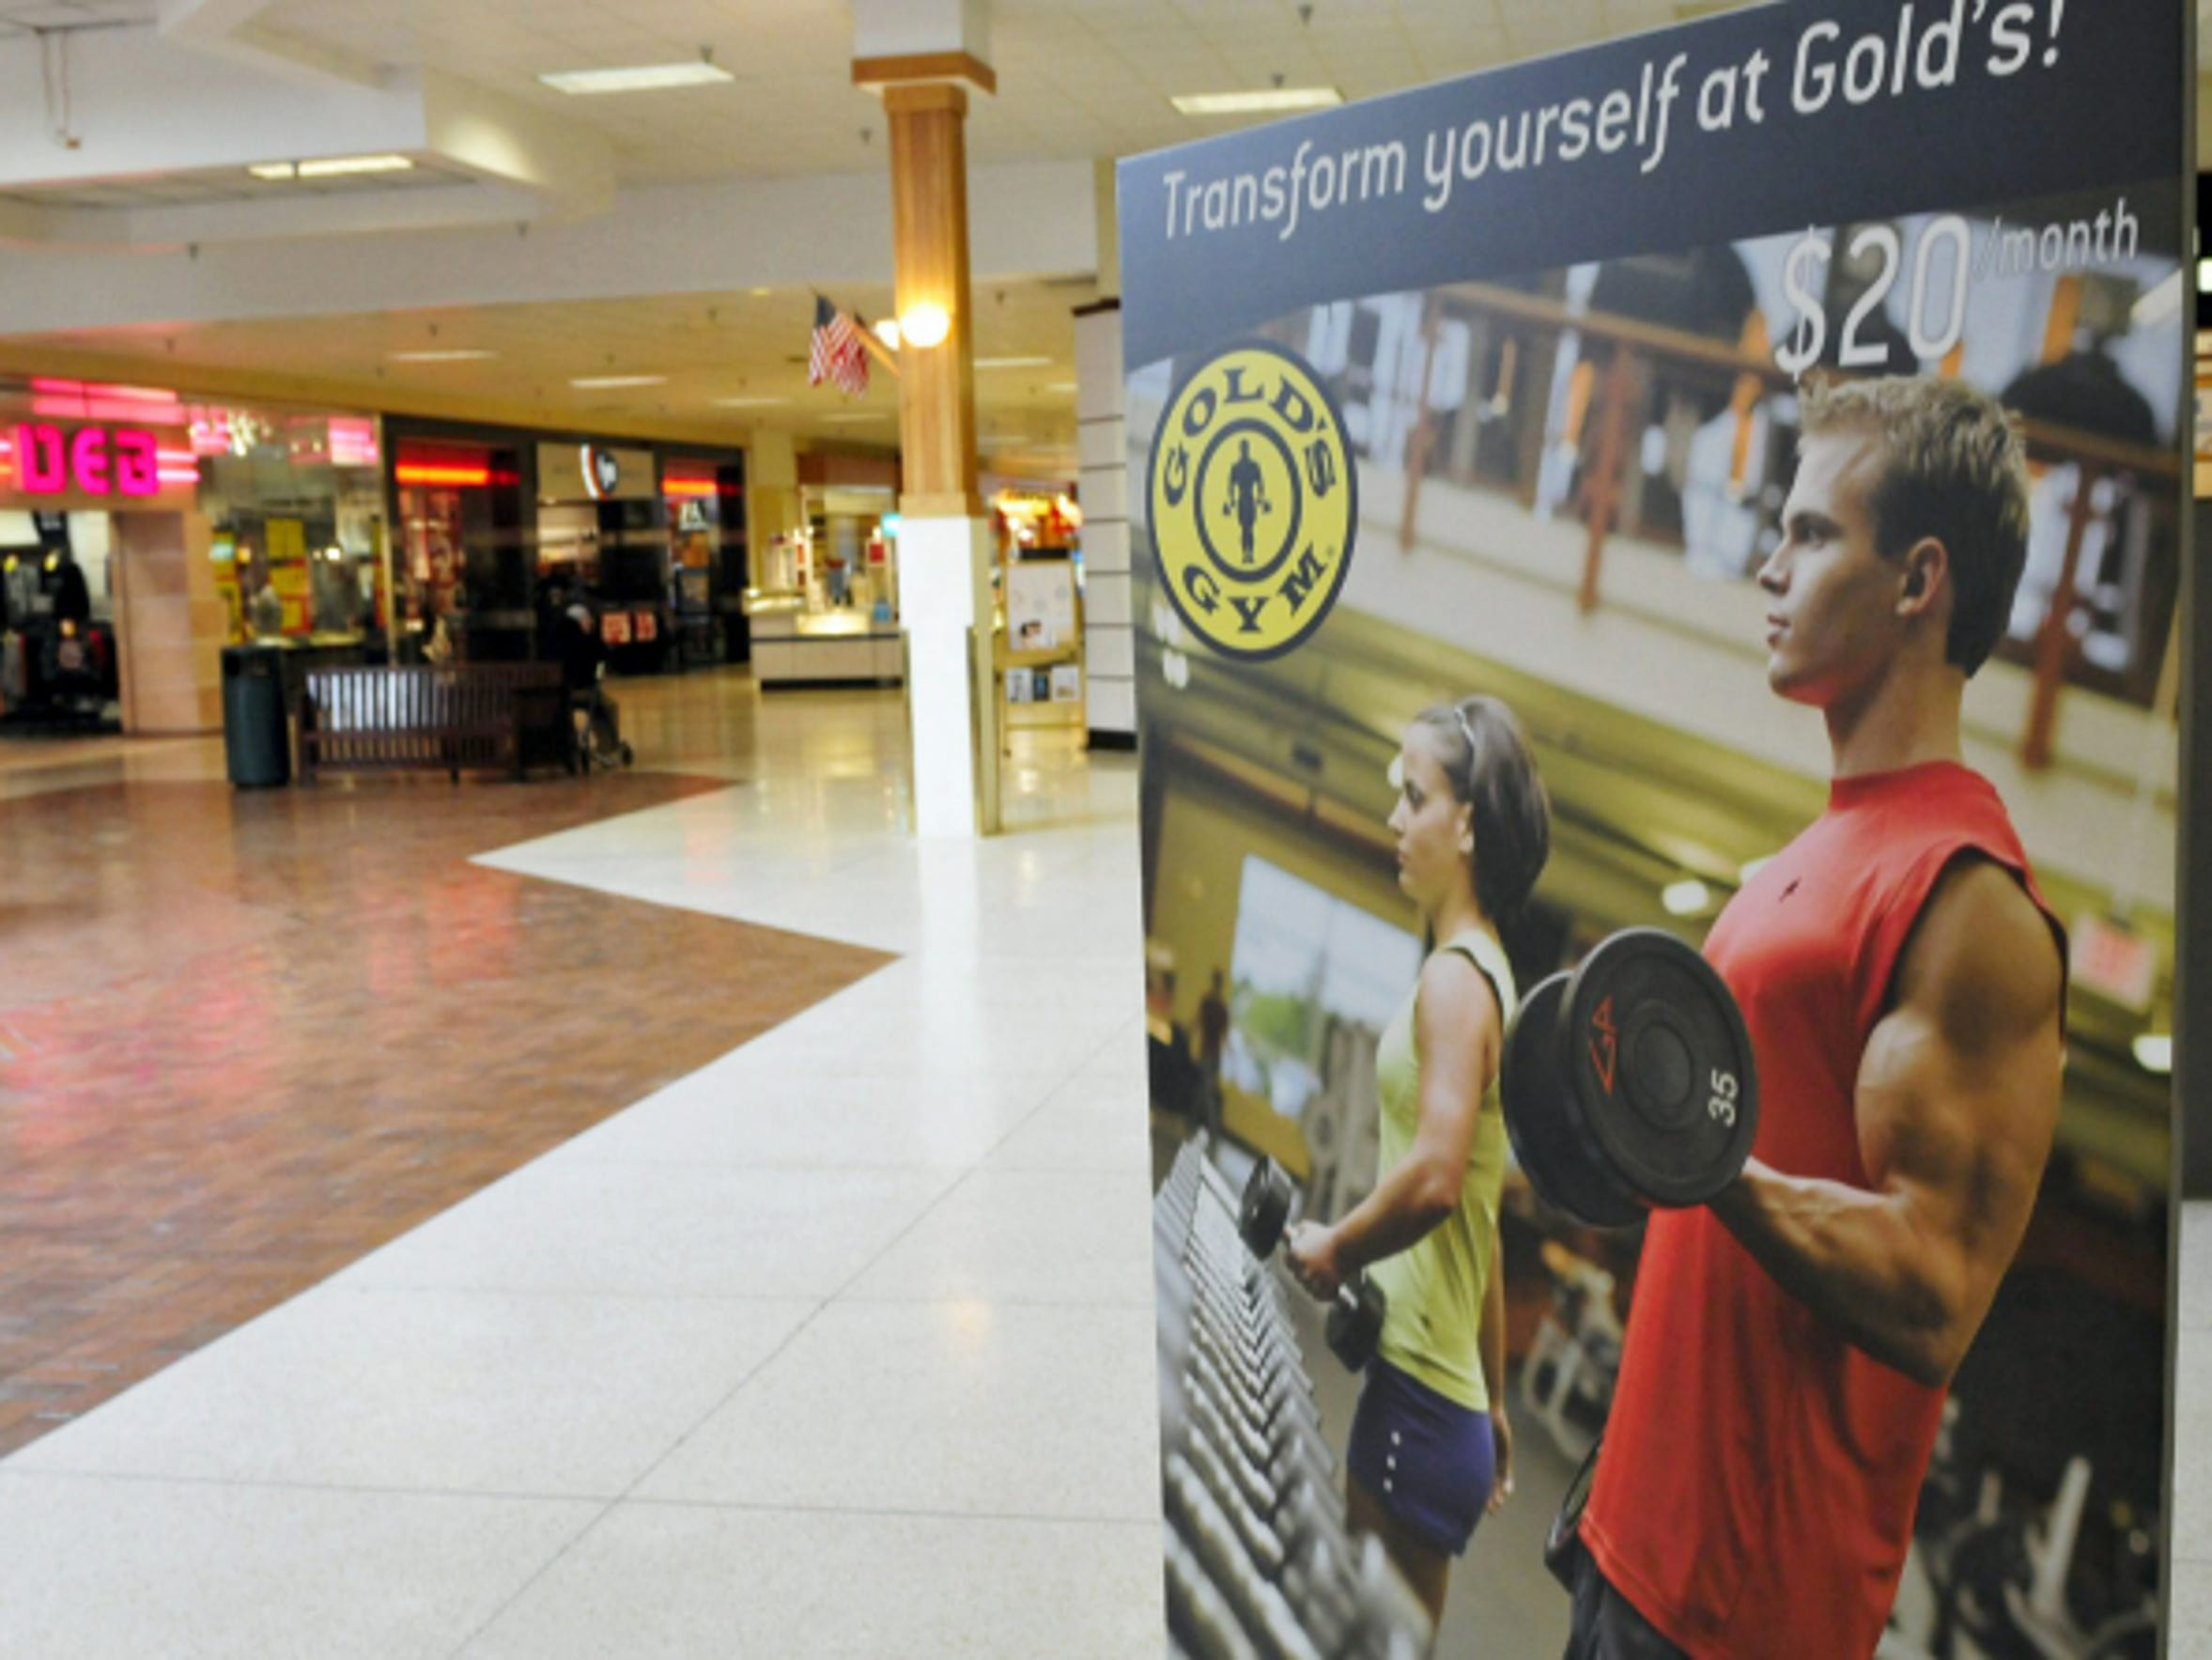 Gold's Gym opened in Chambersburg Mall in early 2015. It moved from its location in Southgate Shopping Center in Chambersburg.